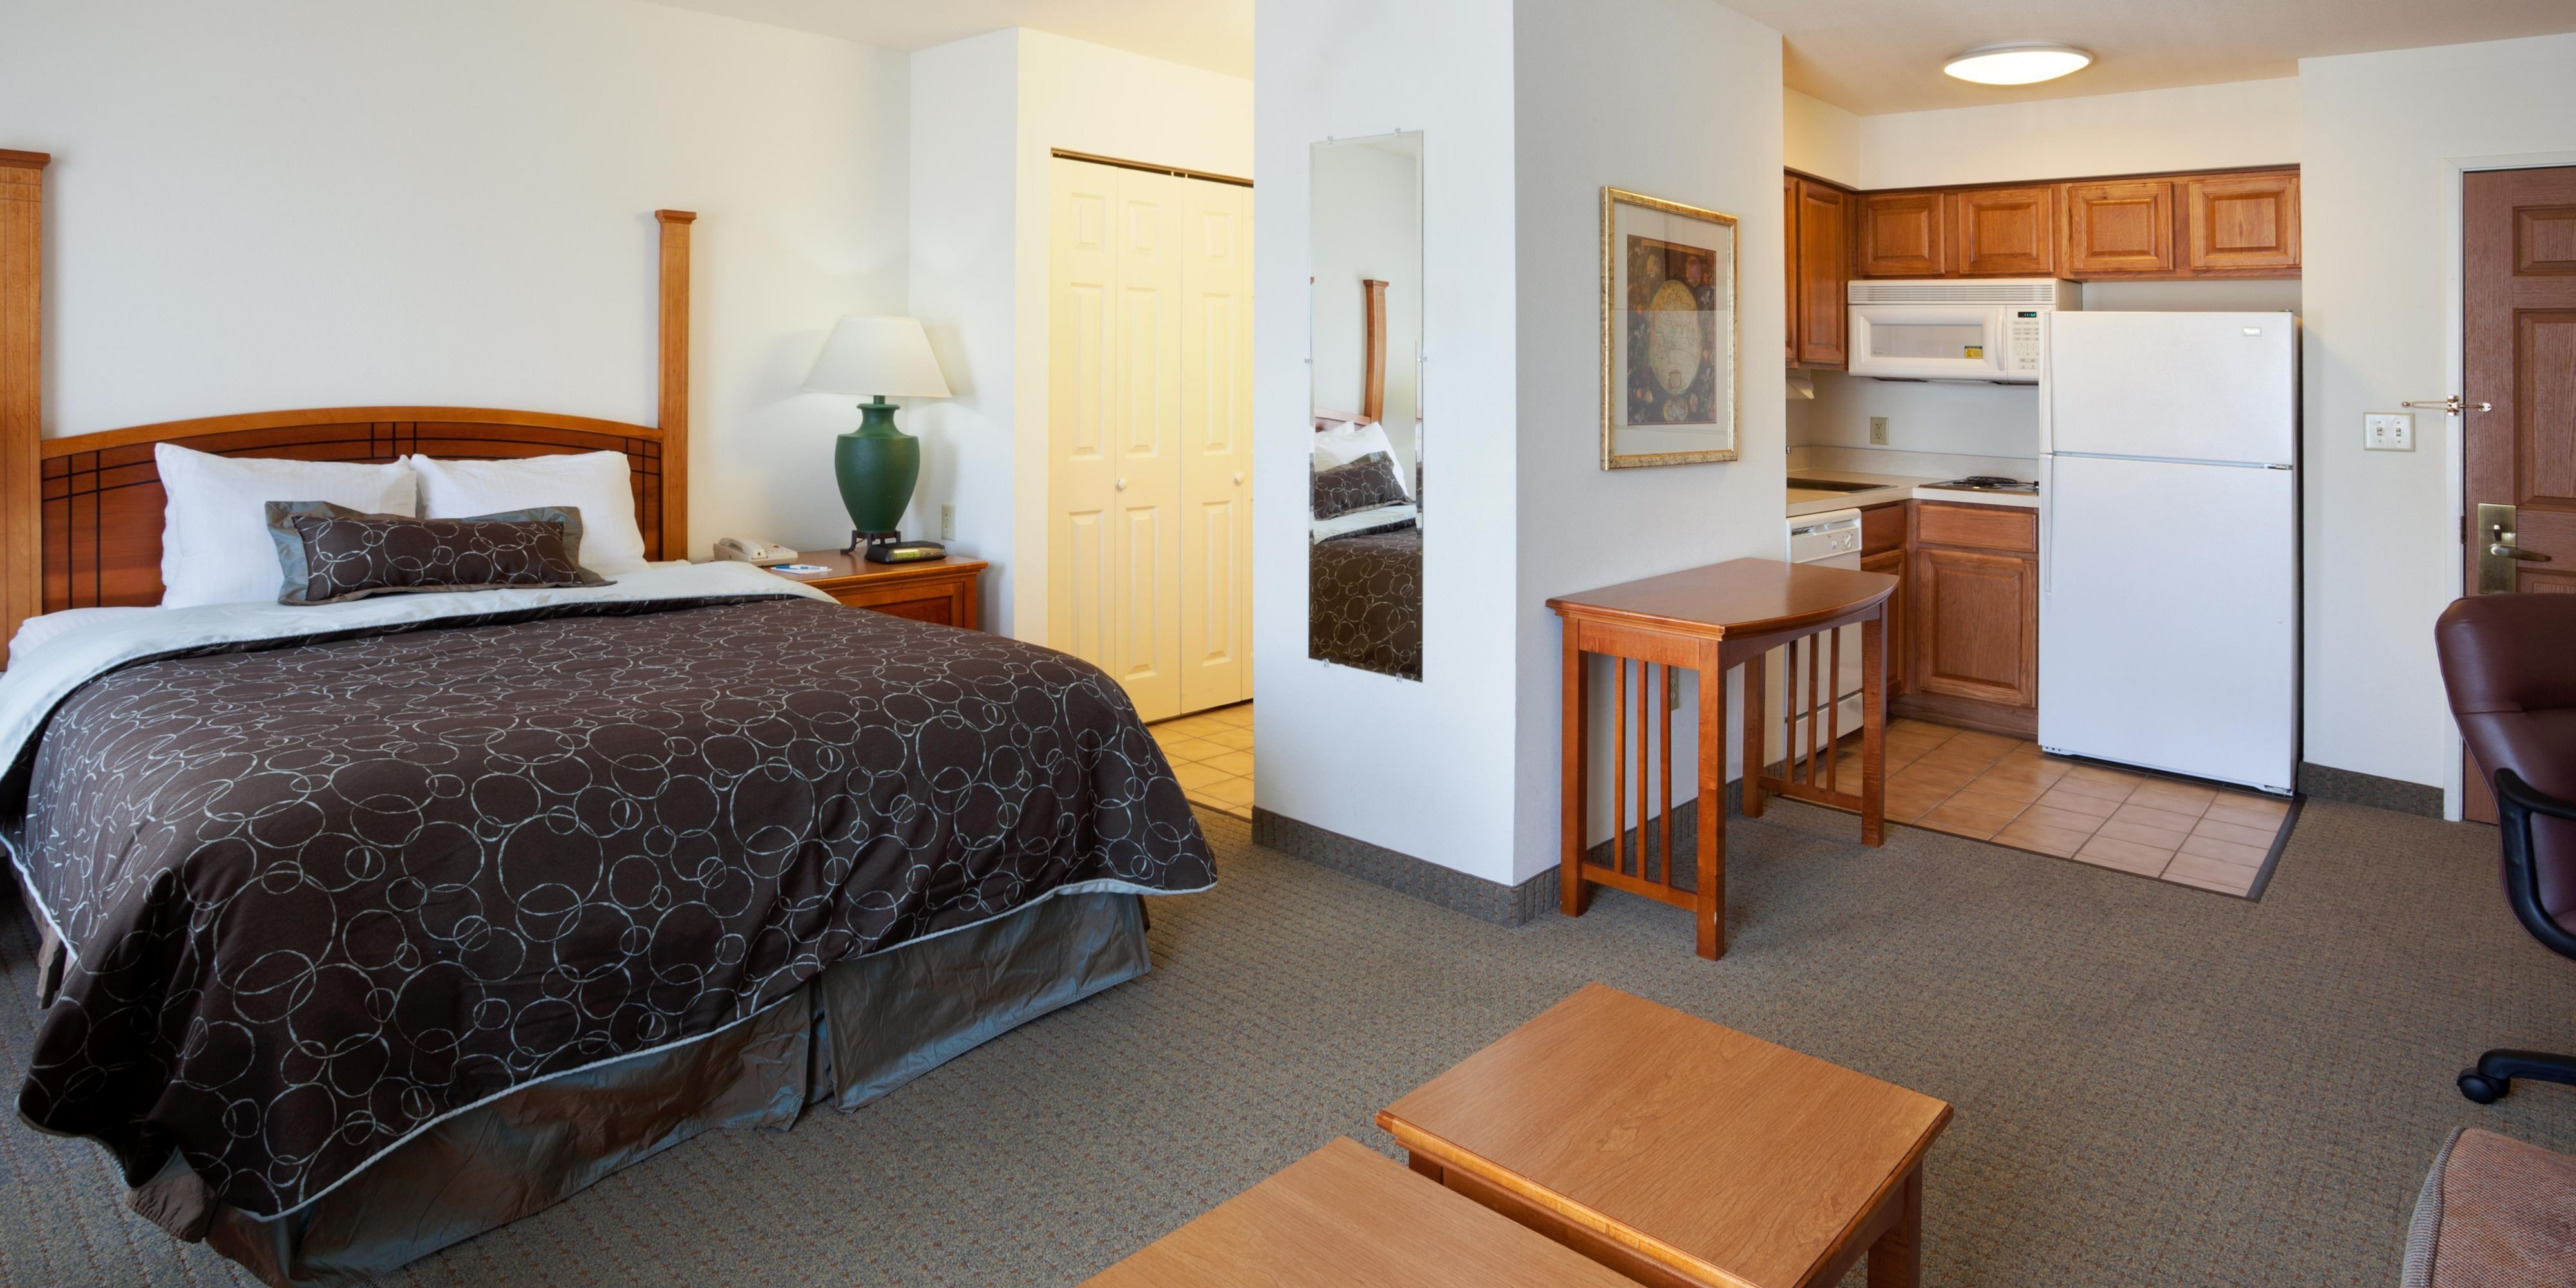 Best 2 Bedroom Hotels In San Antonio Www Indiepedia Org With Pictures